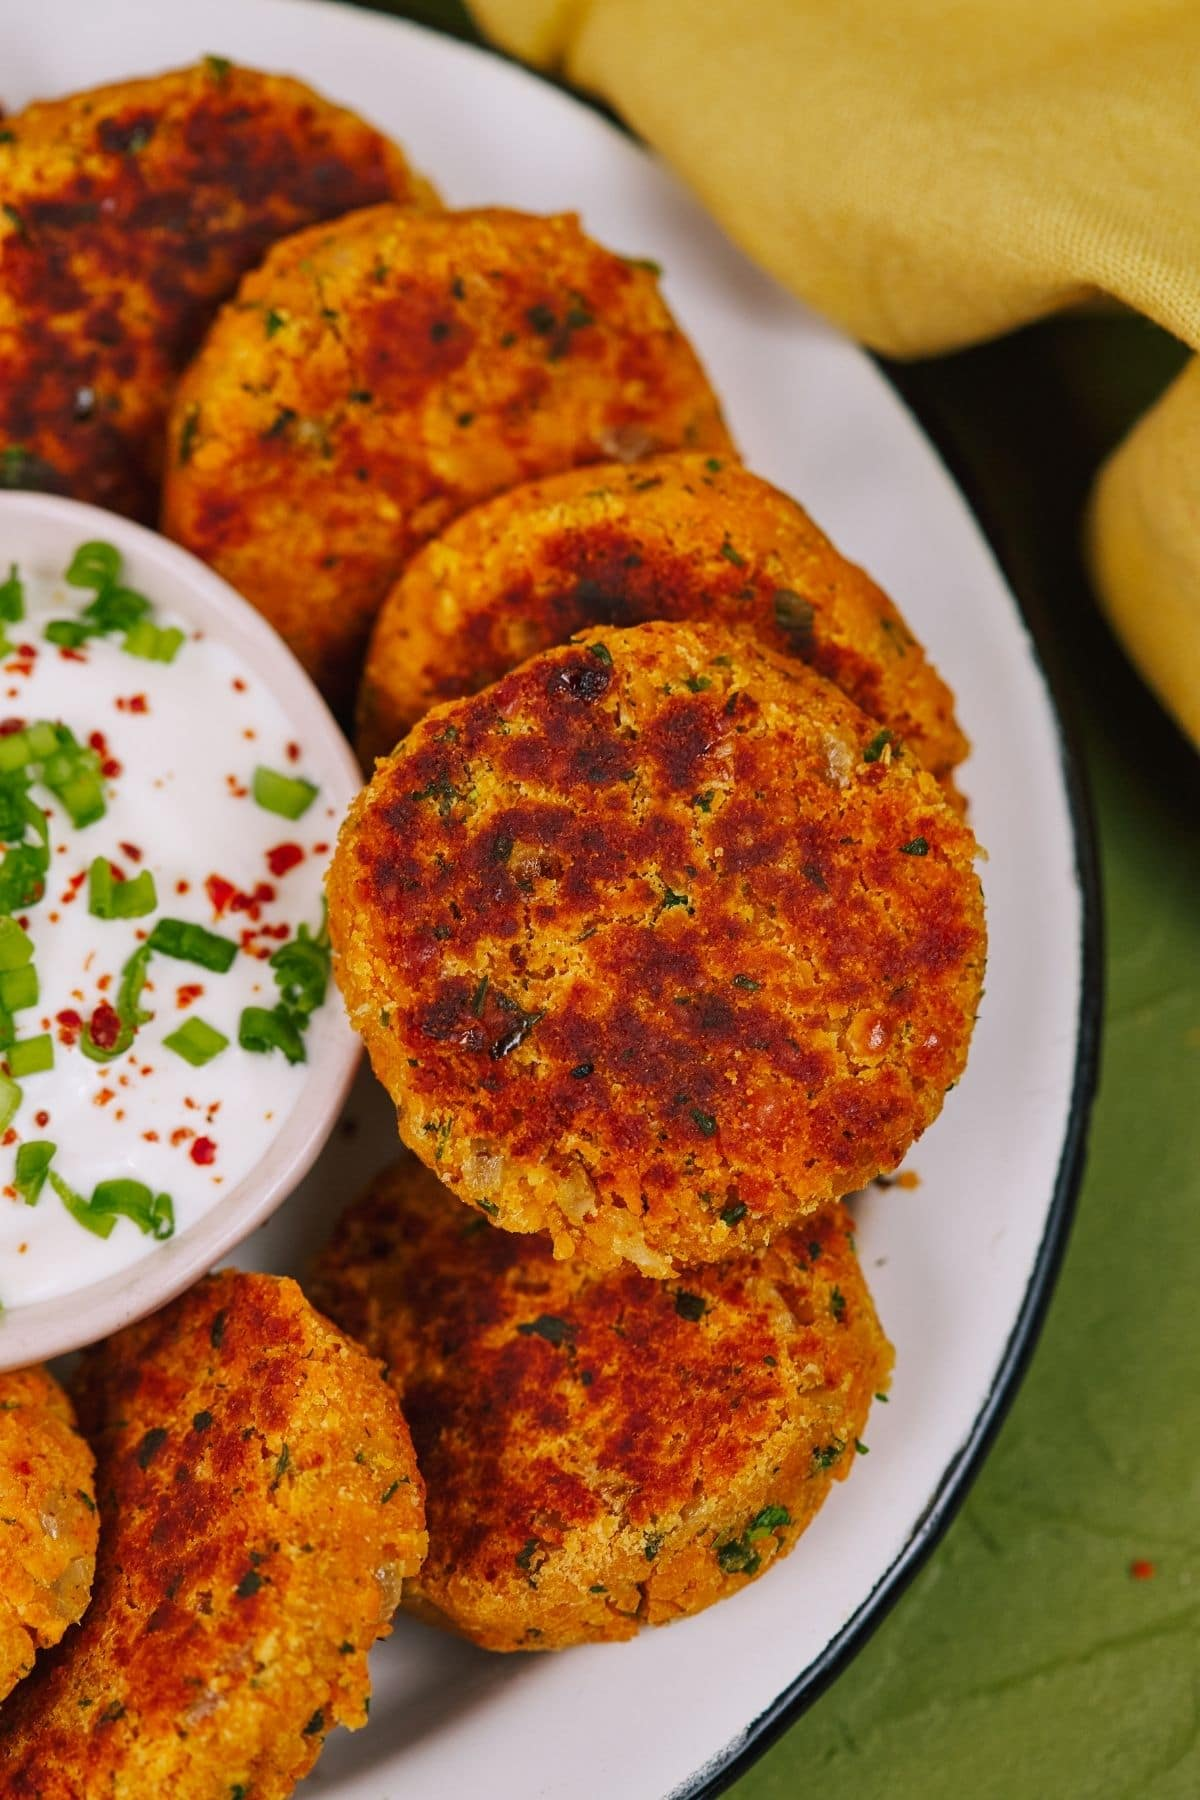 Stacked vegetable patties on white plate sitting on green tablecloth